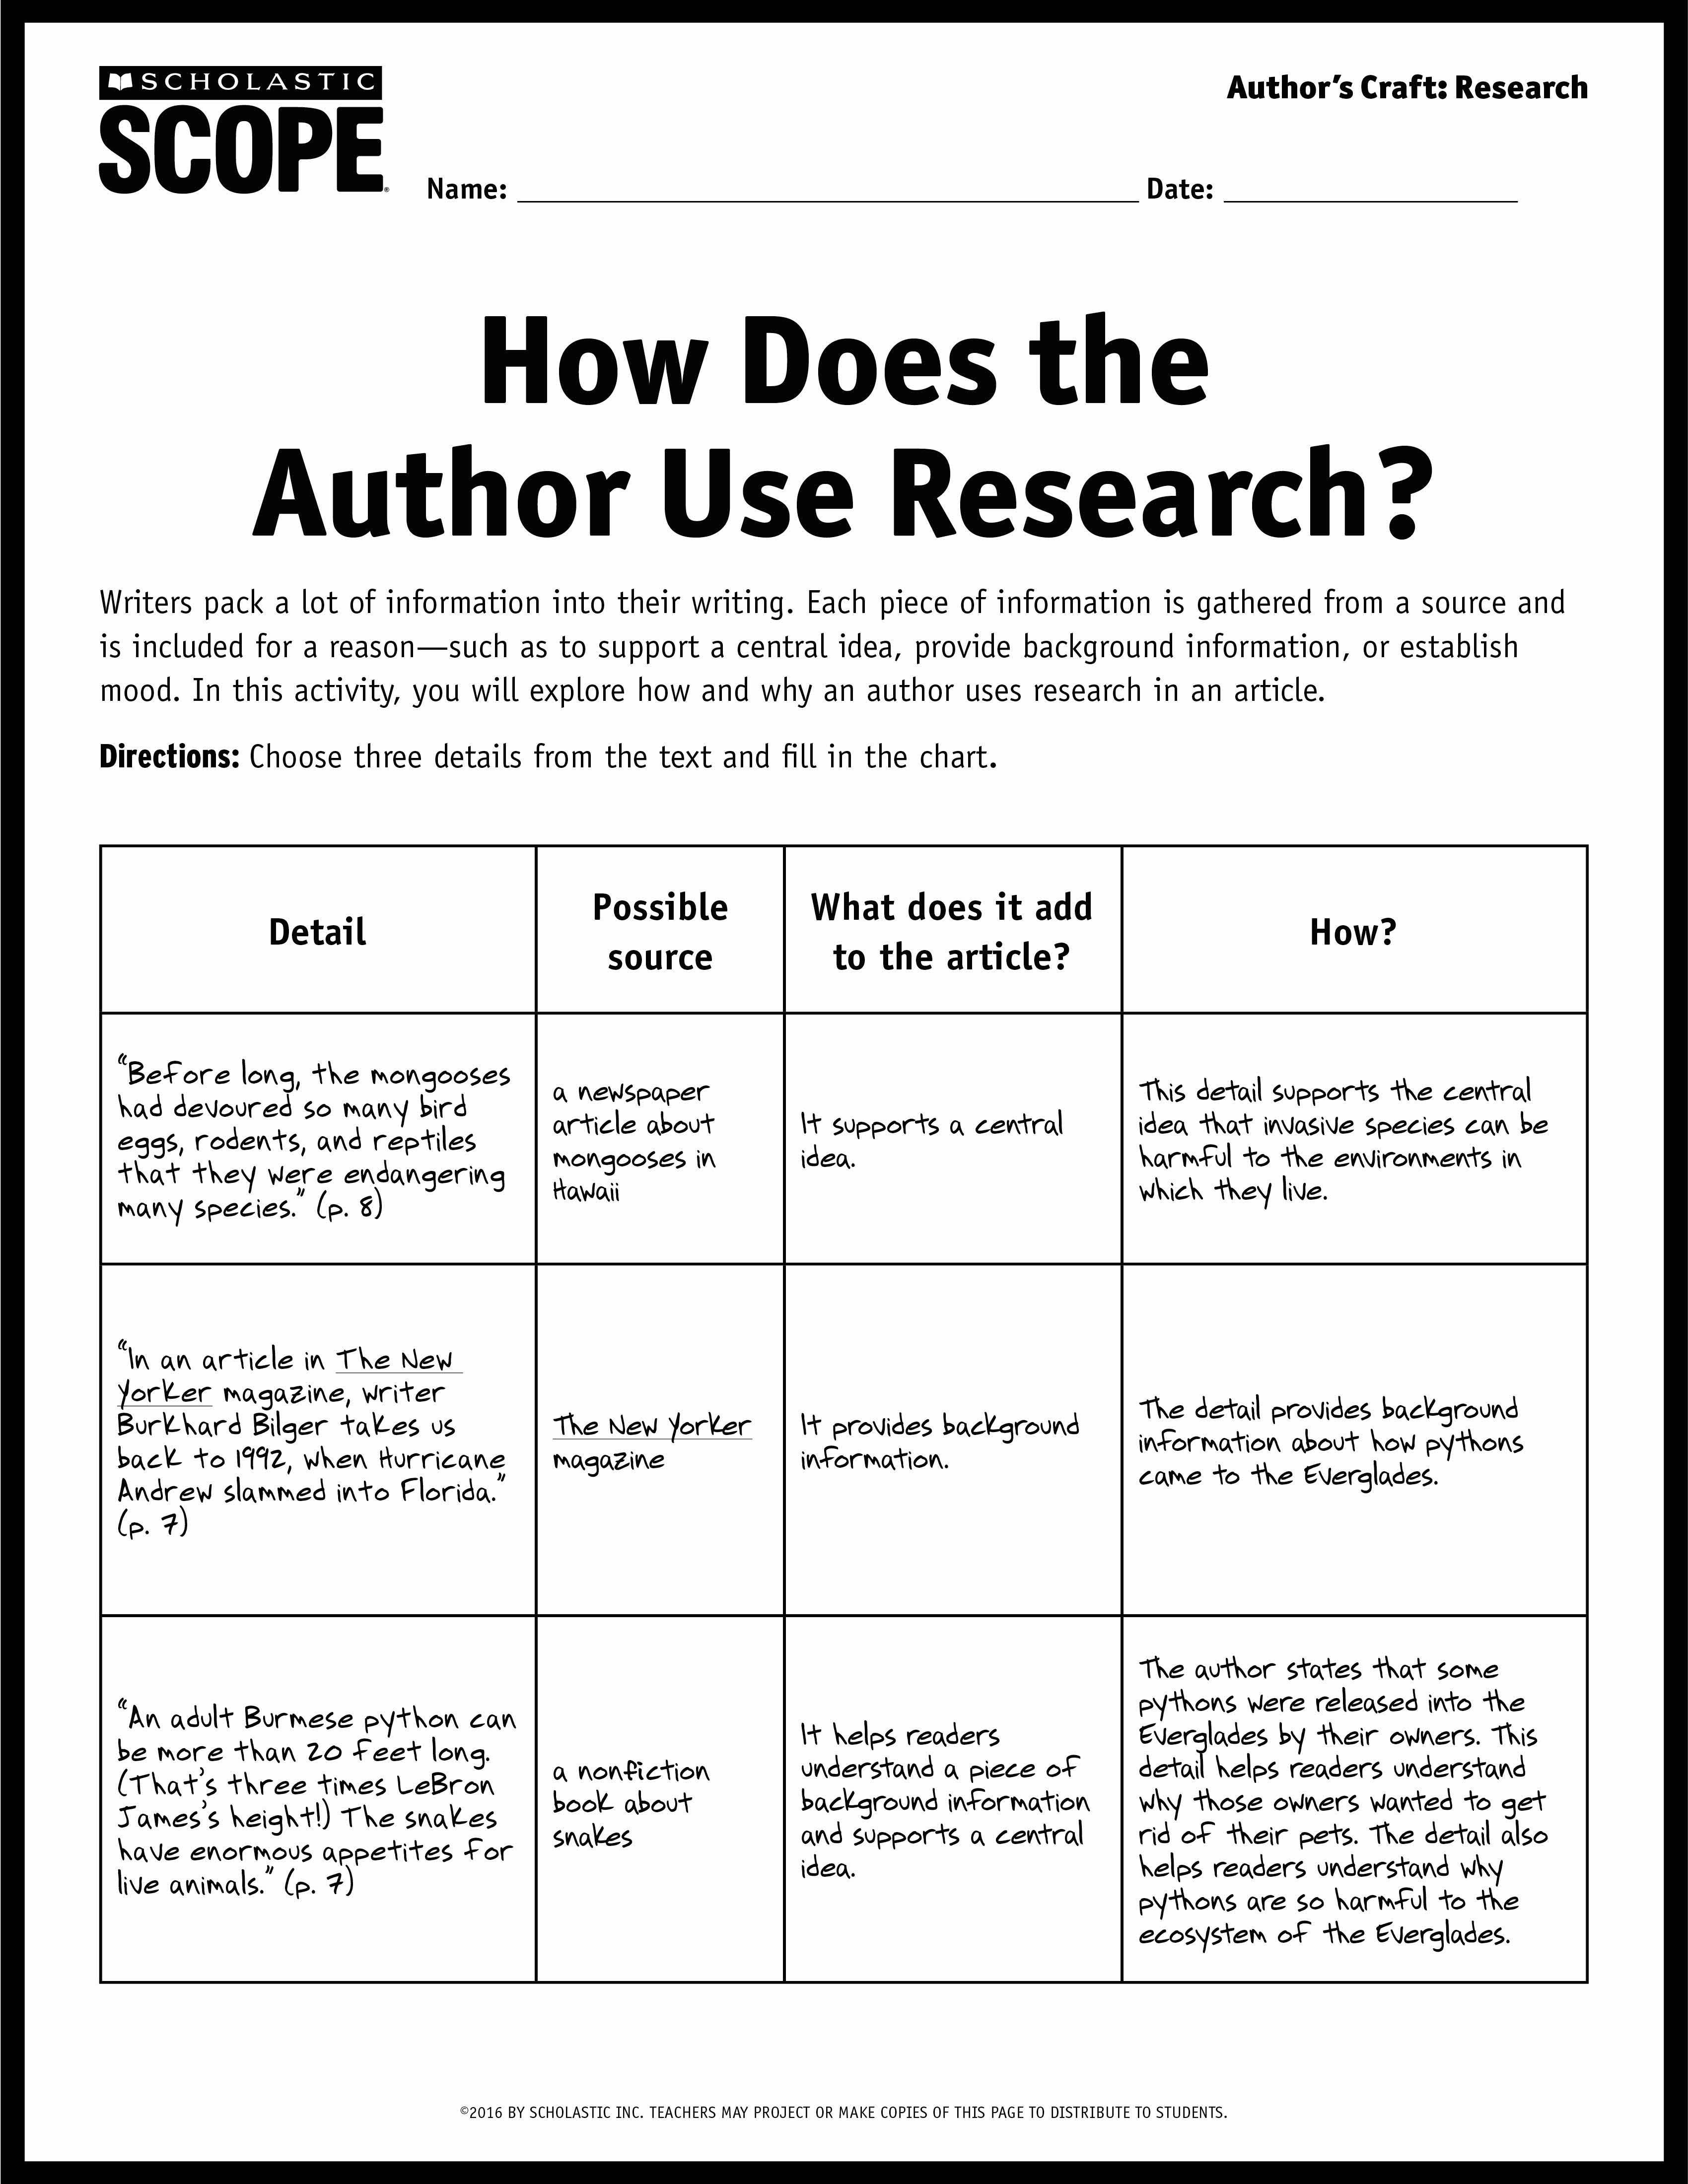 10 Attractive Middle School Newspaper Article Ideas incorporating research into writing using scope nonfiction middle 2020